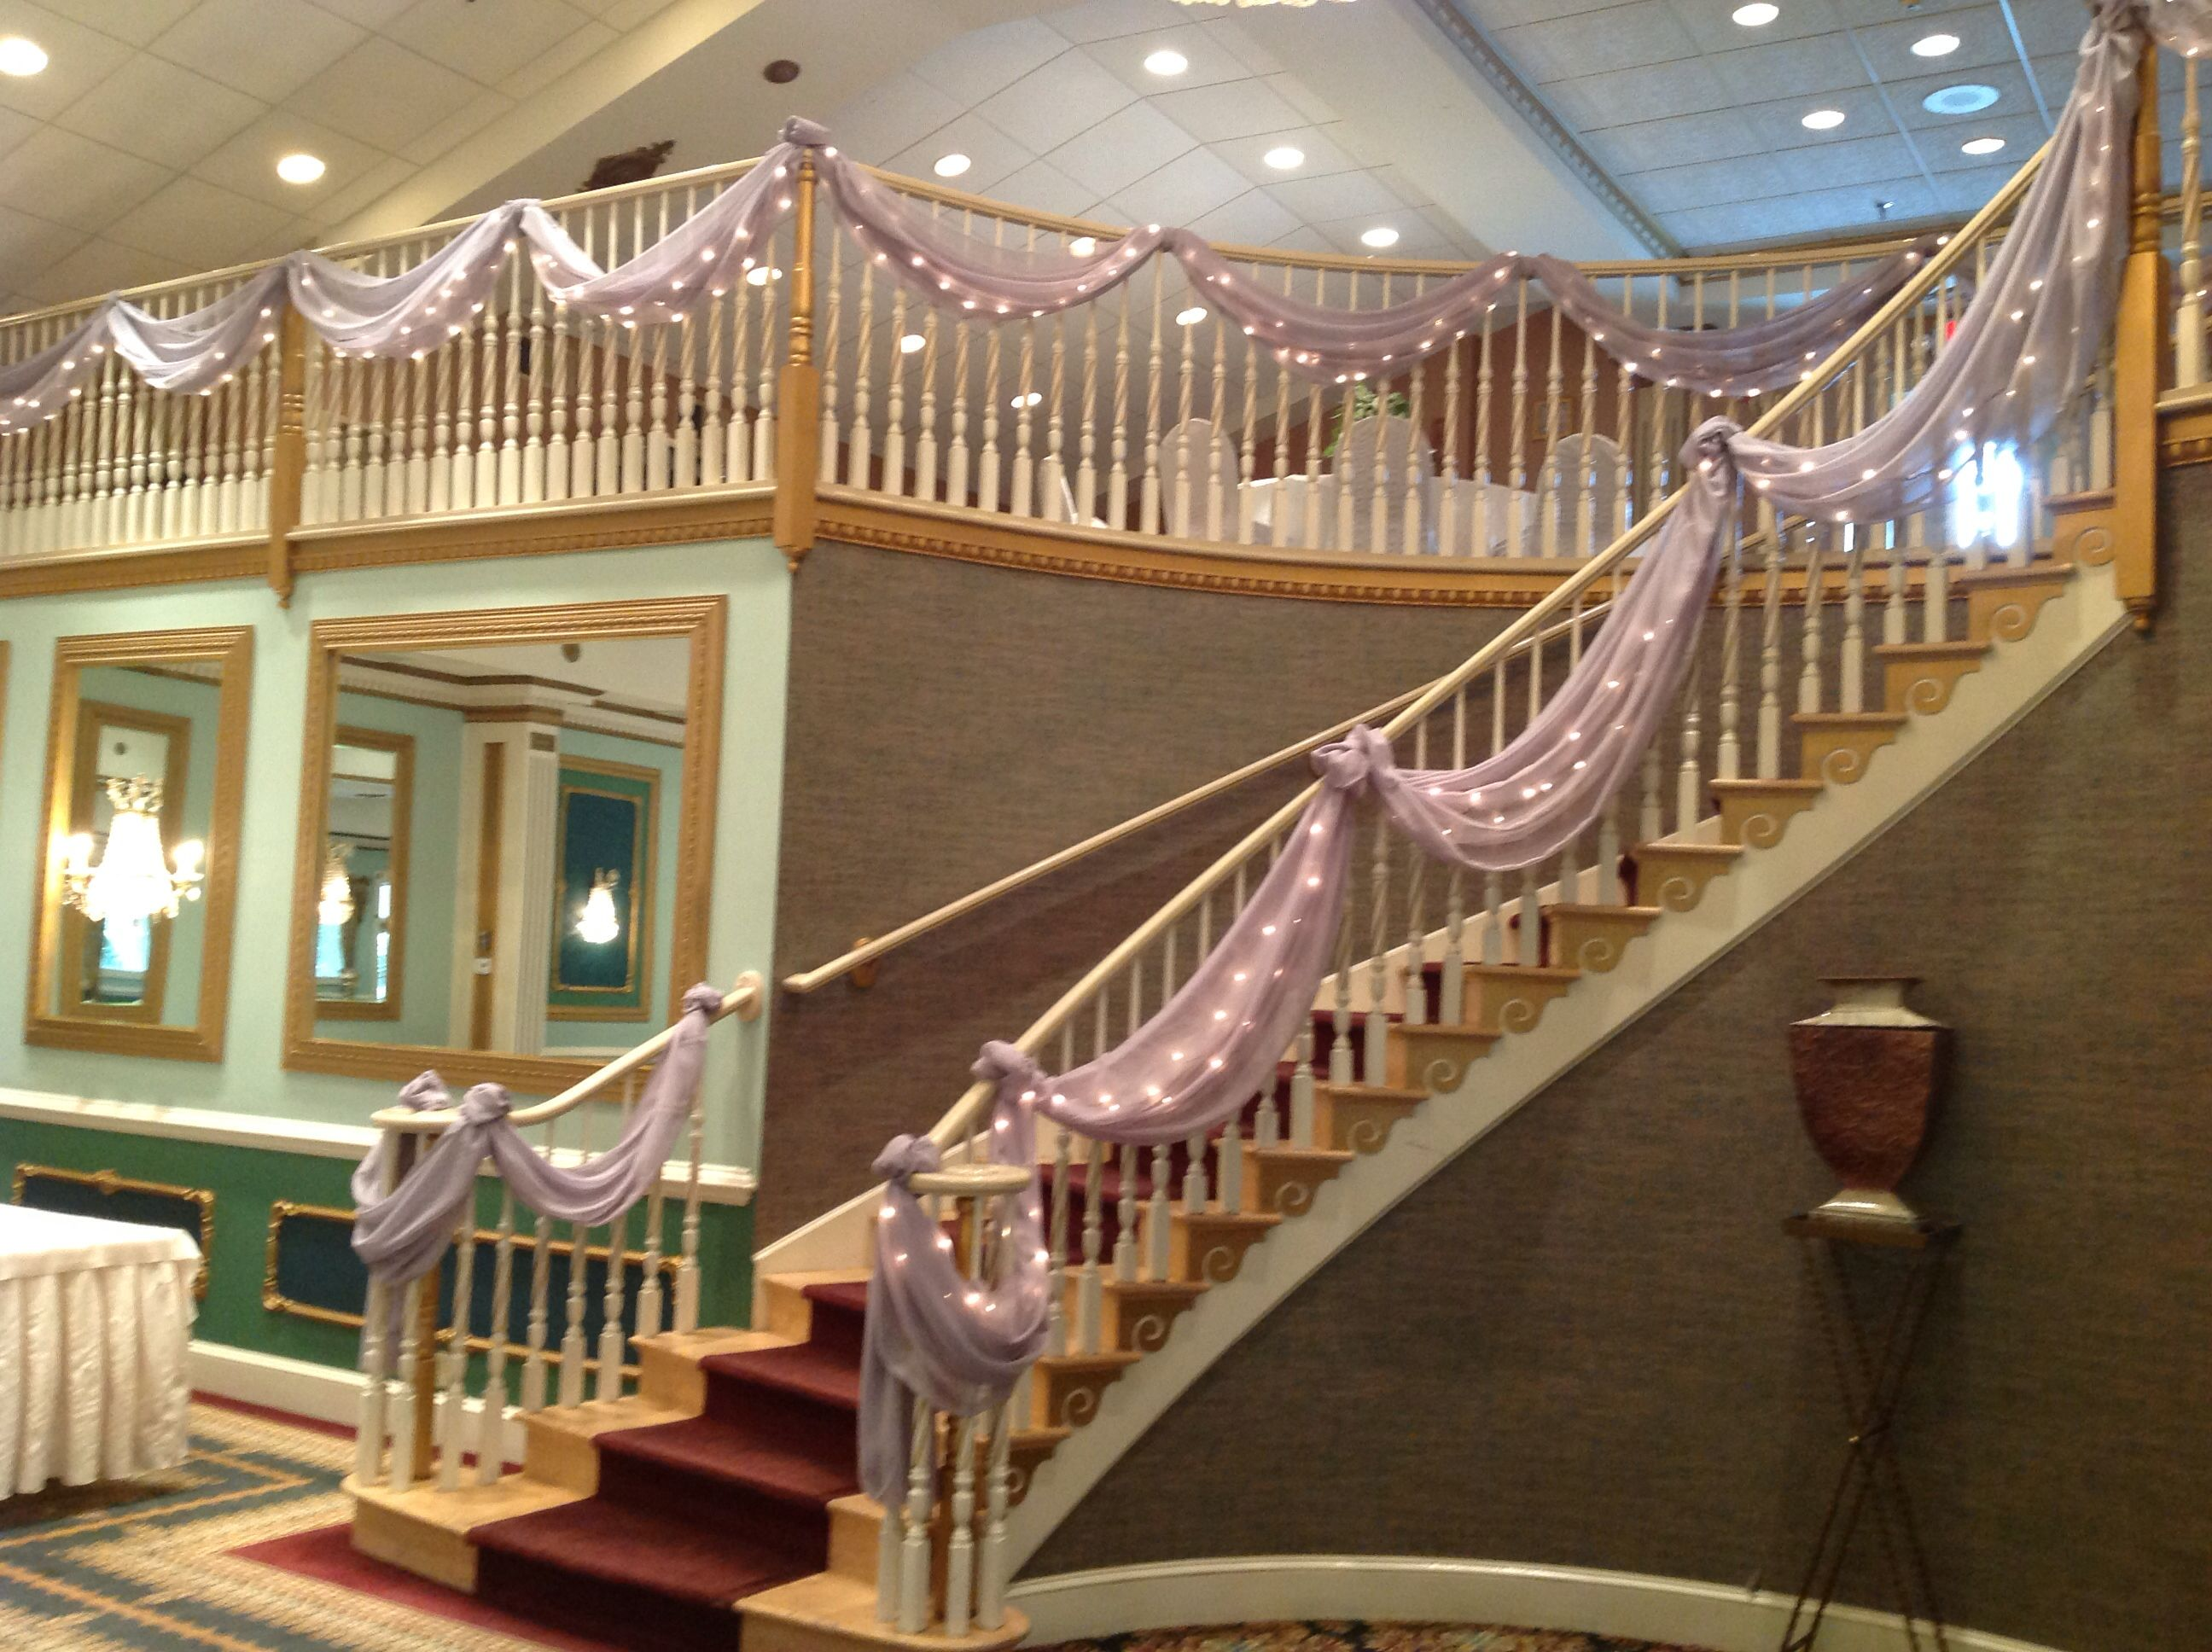 The Staircase At Mendenhall Inns Grand Ballroom Decorated With Material And Lights By Ramones Flowers